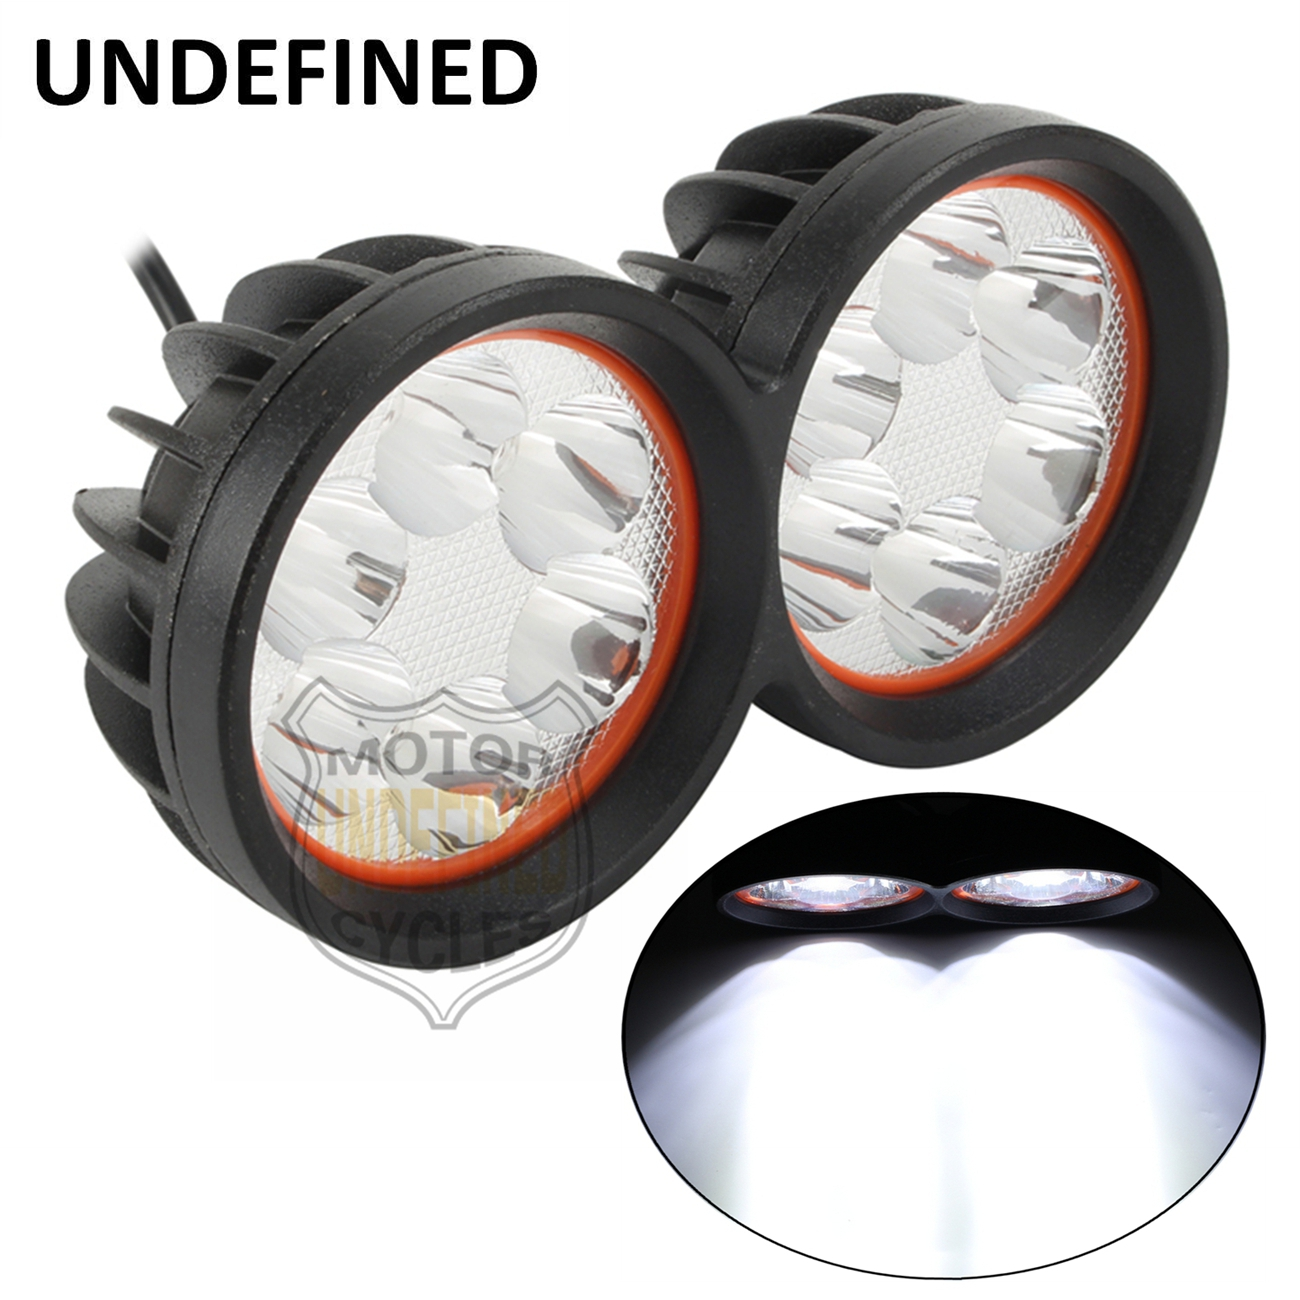 Motorcycle Parts 5000LM 12LED Hi/Lo Beam Double Dual Front Running Headlight Driving Spot Lamp 3 Wire For  Honda UNDEFINED